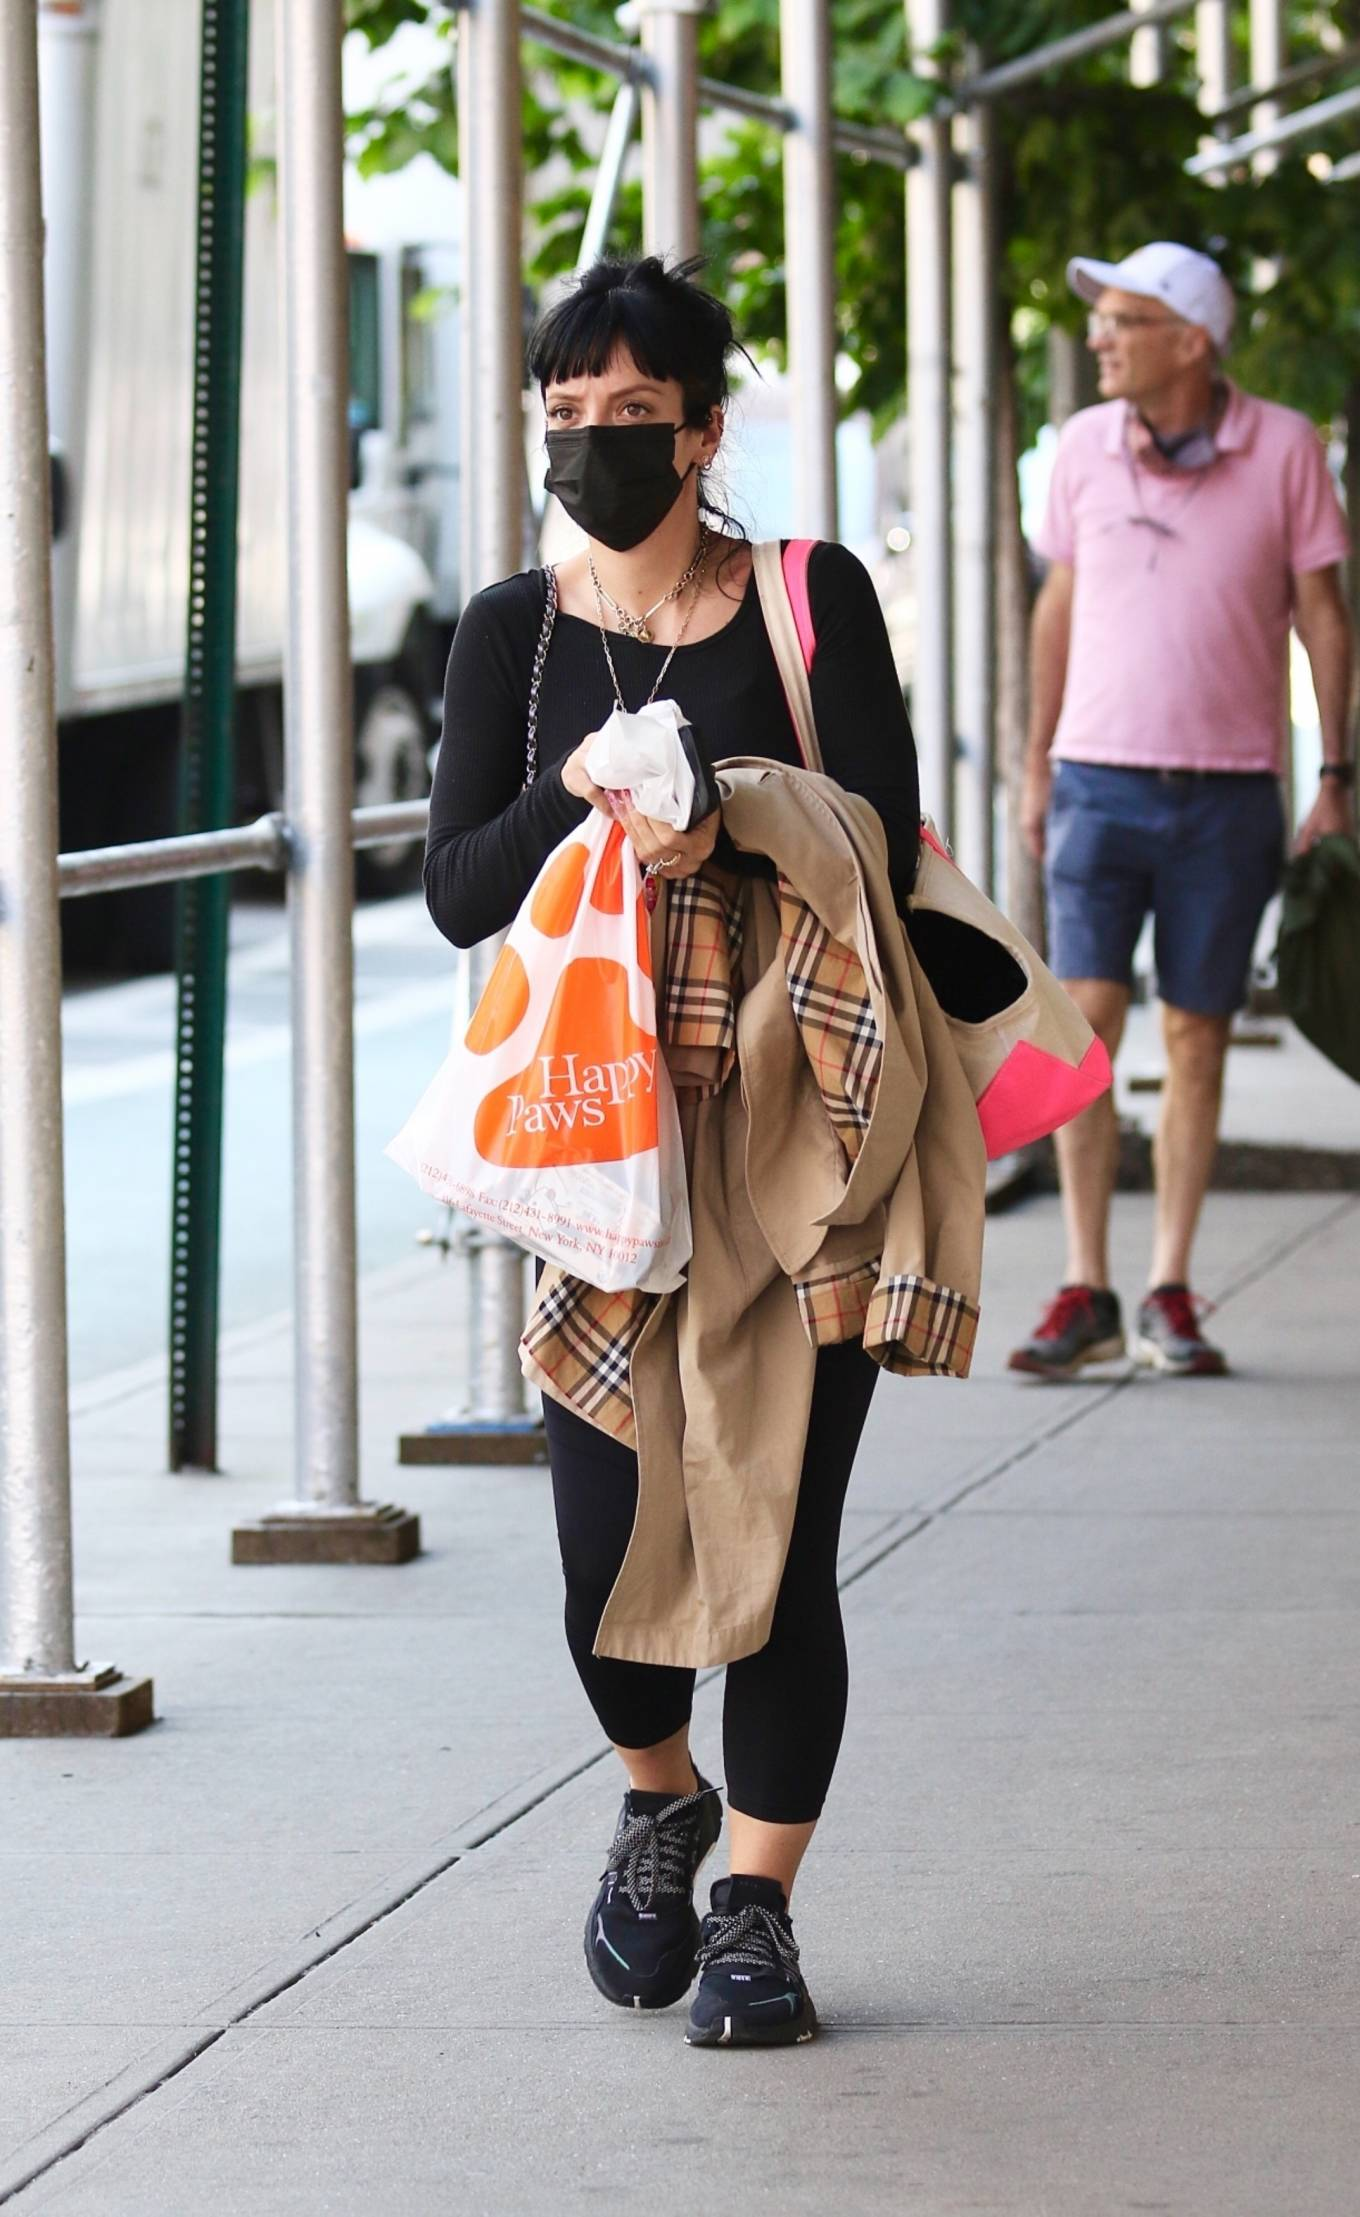 Lily Allen 2021 : Lily Allen – Shopping at Happy Paws pet store in Downtown Manhattan-06